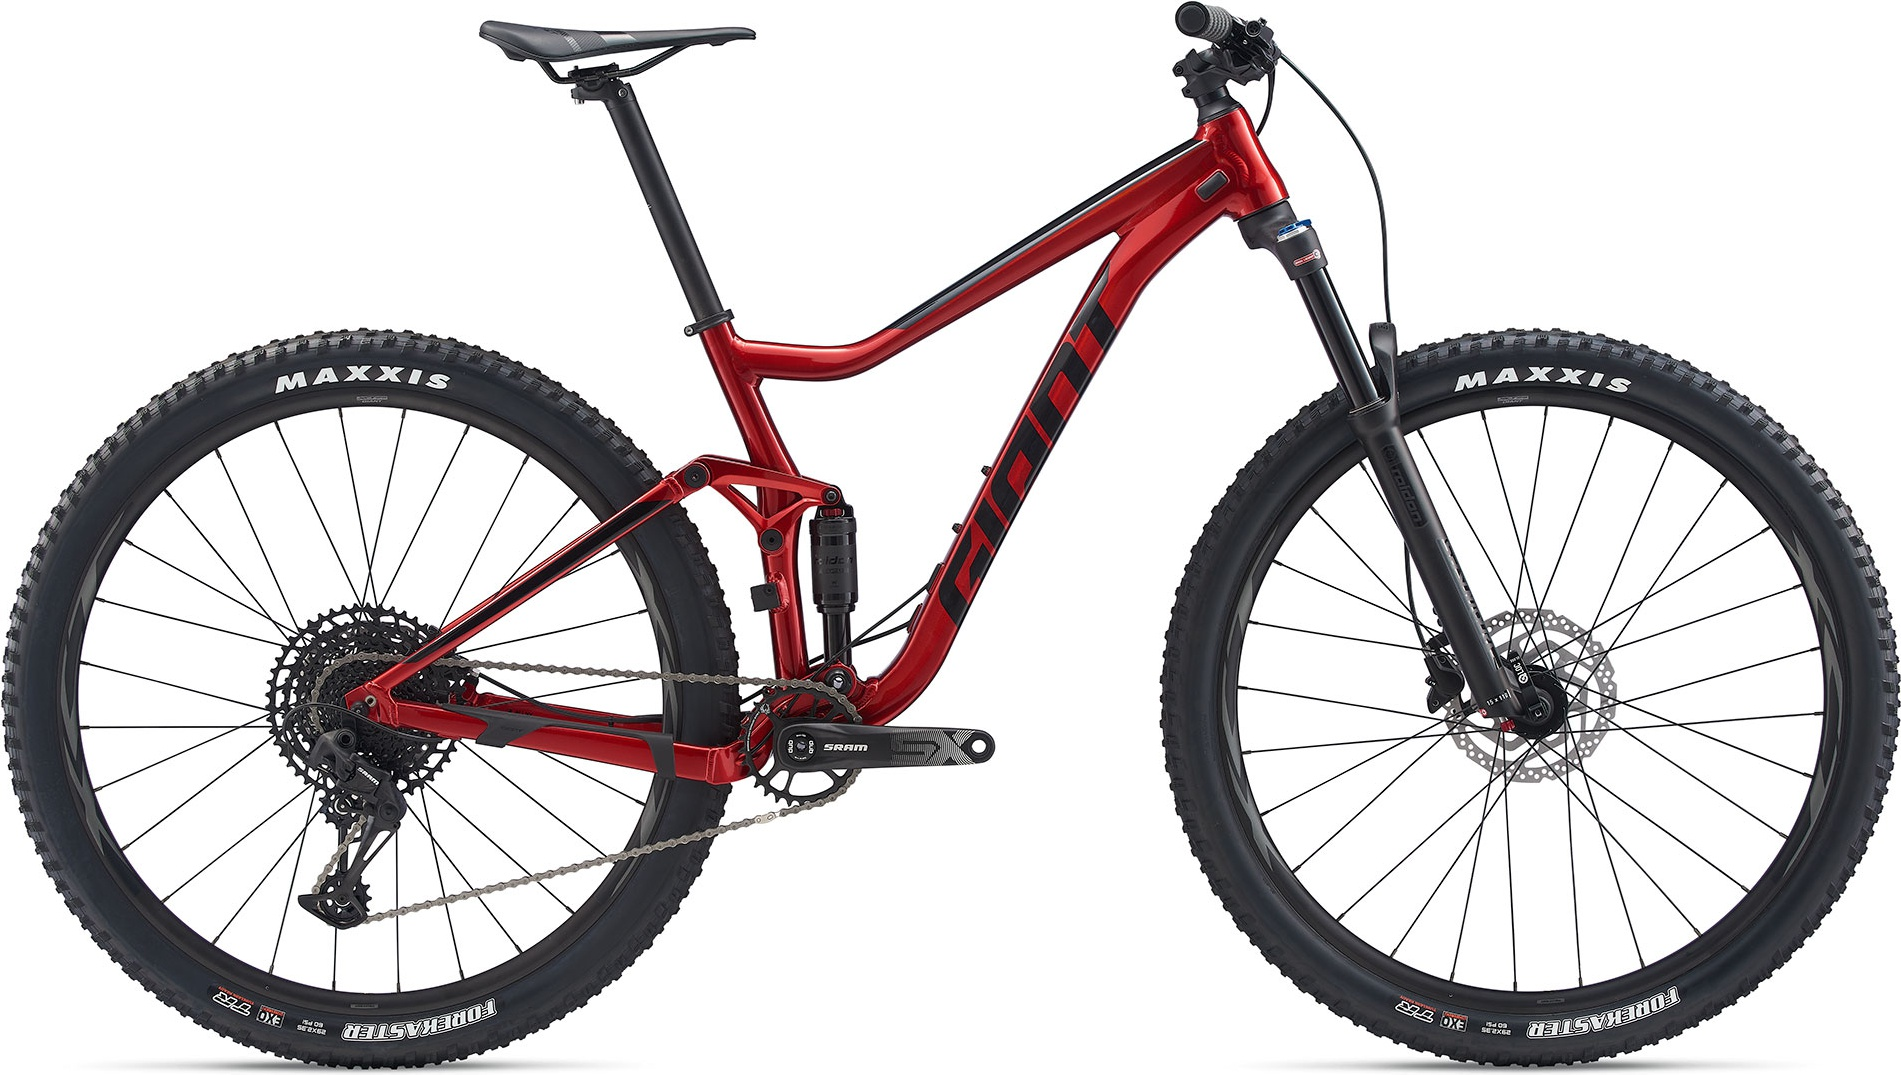 Giant Stance 29 2 (Metallic Red)